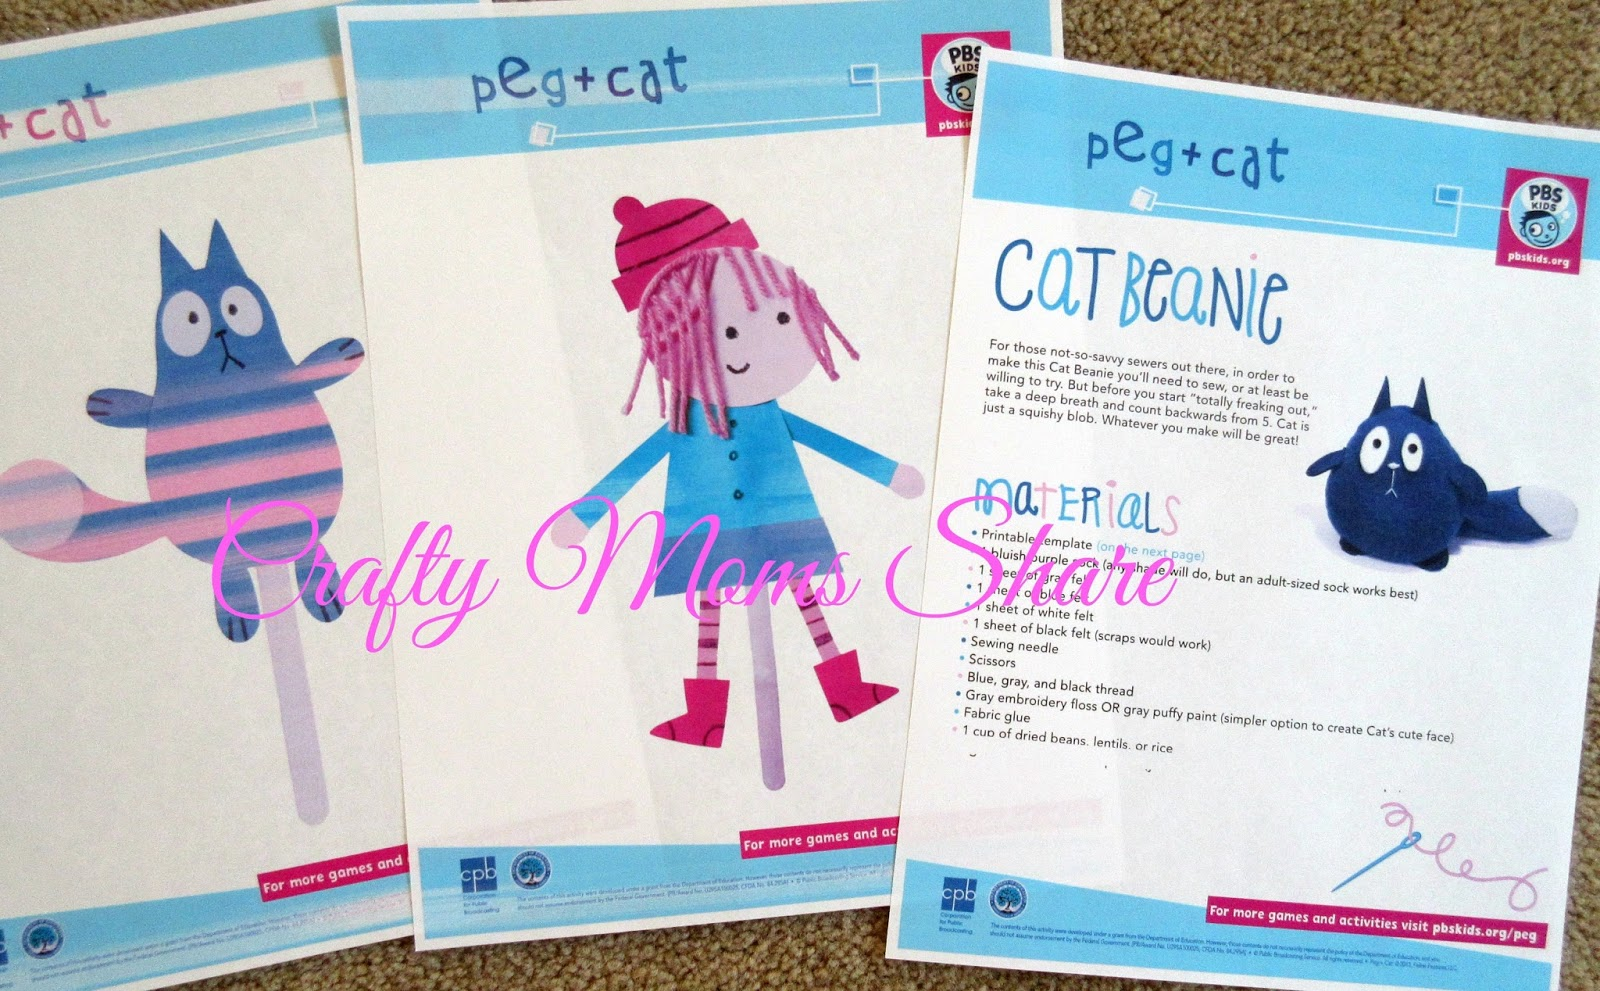 4d604efff97 I definitely see some Peg + Cat crafts in our near future!